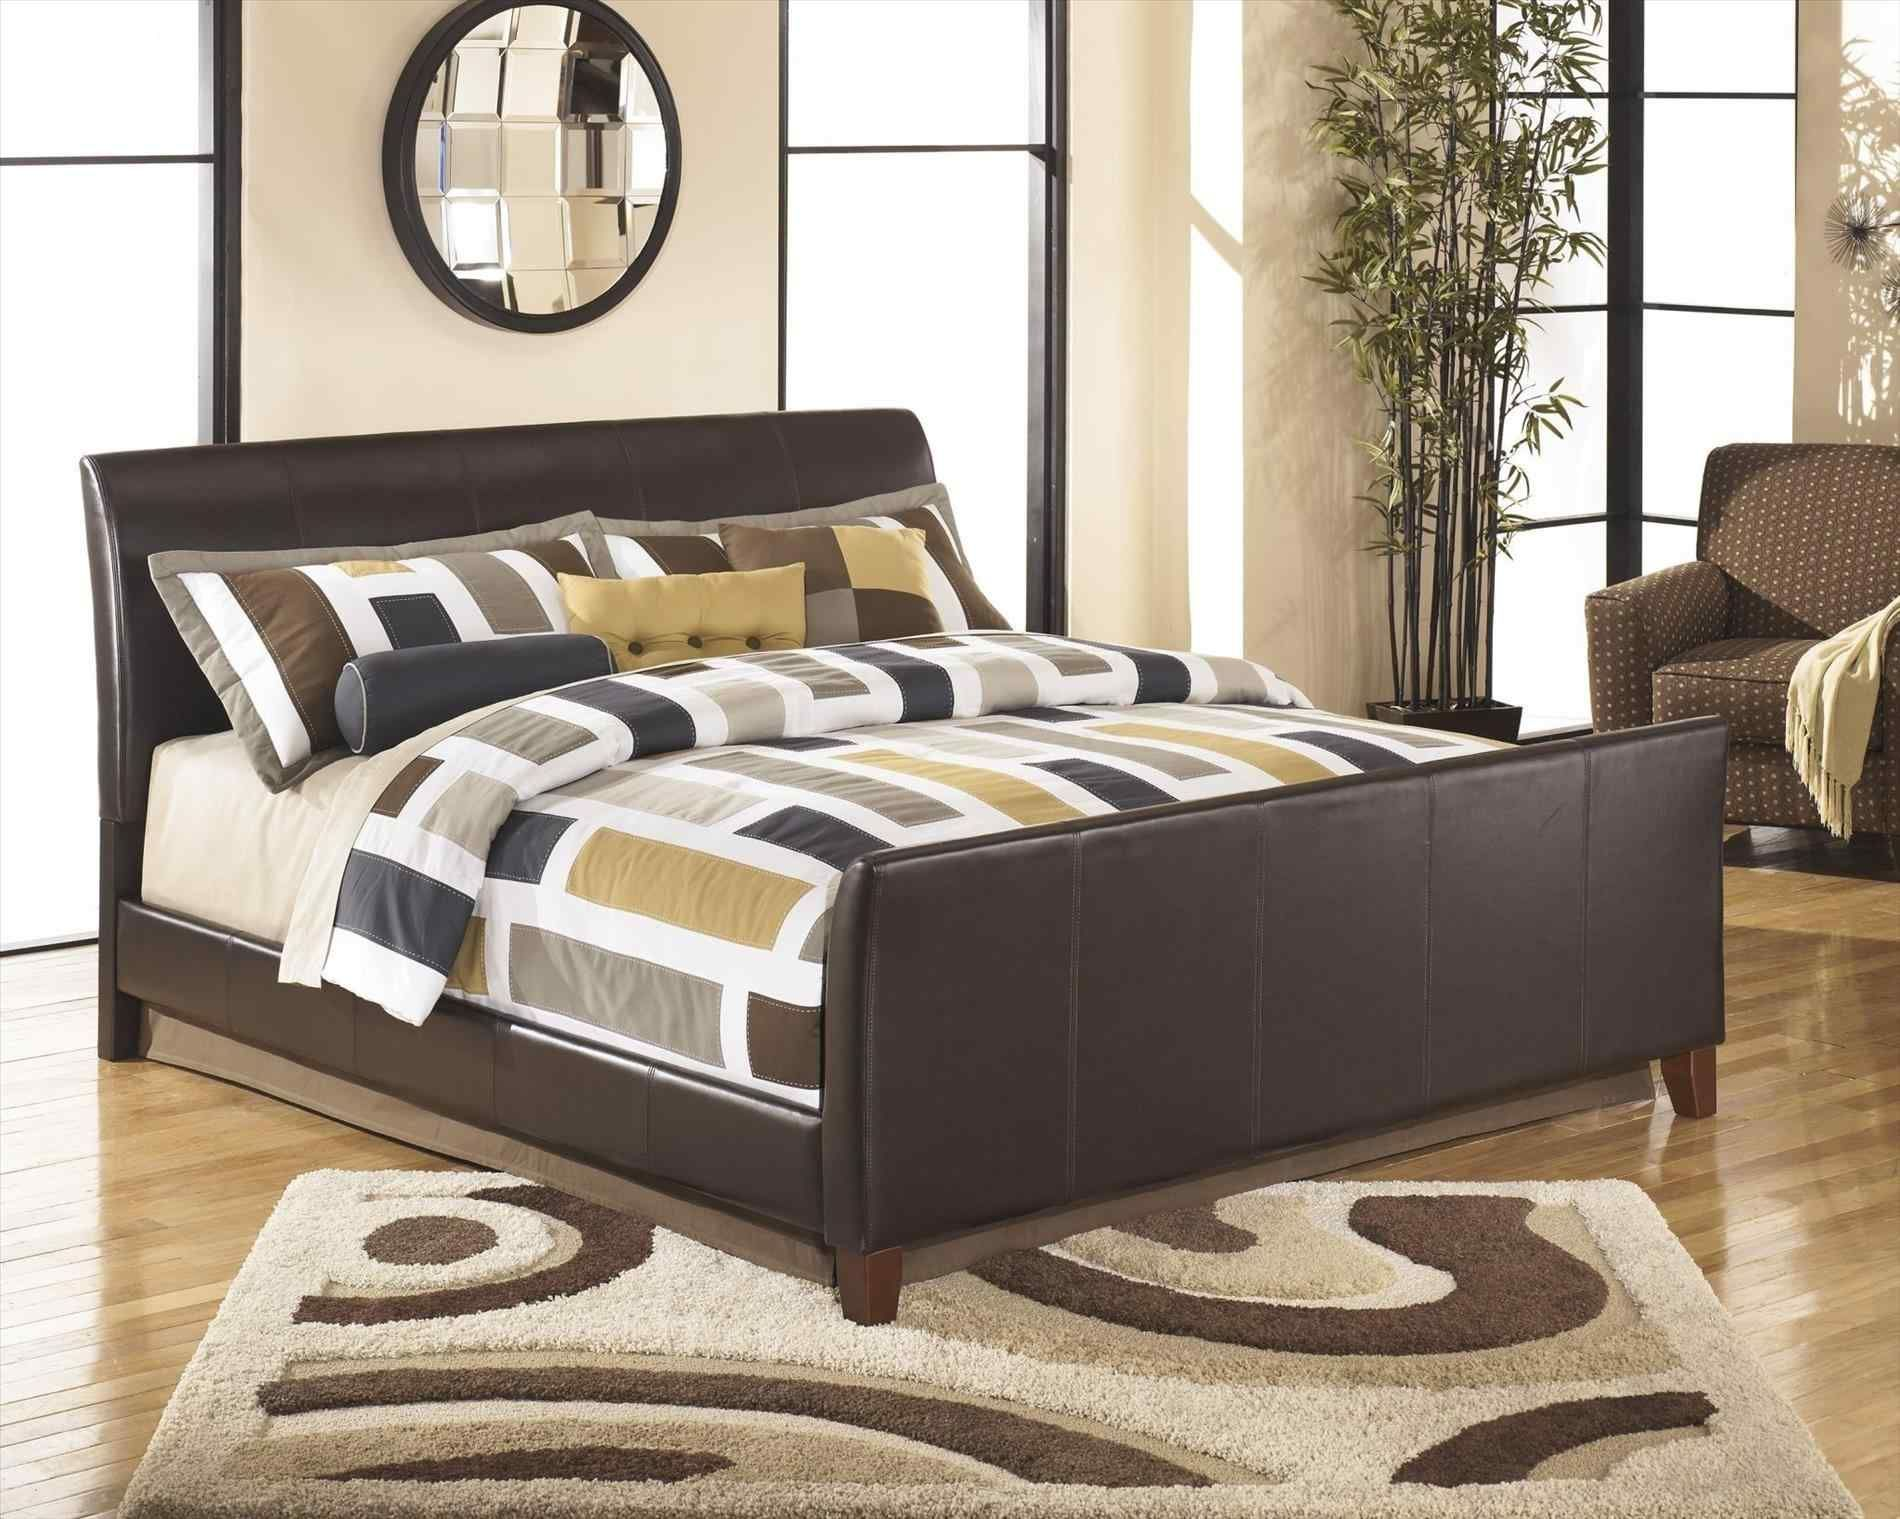 top 10 gorgeous fontaine bedroom set ideas for cozy sleep awesome rh pinterest com